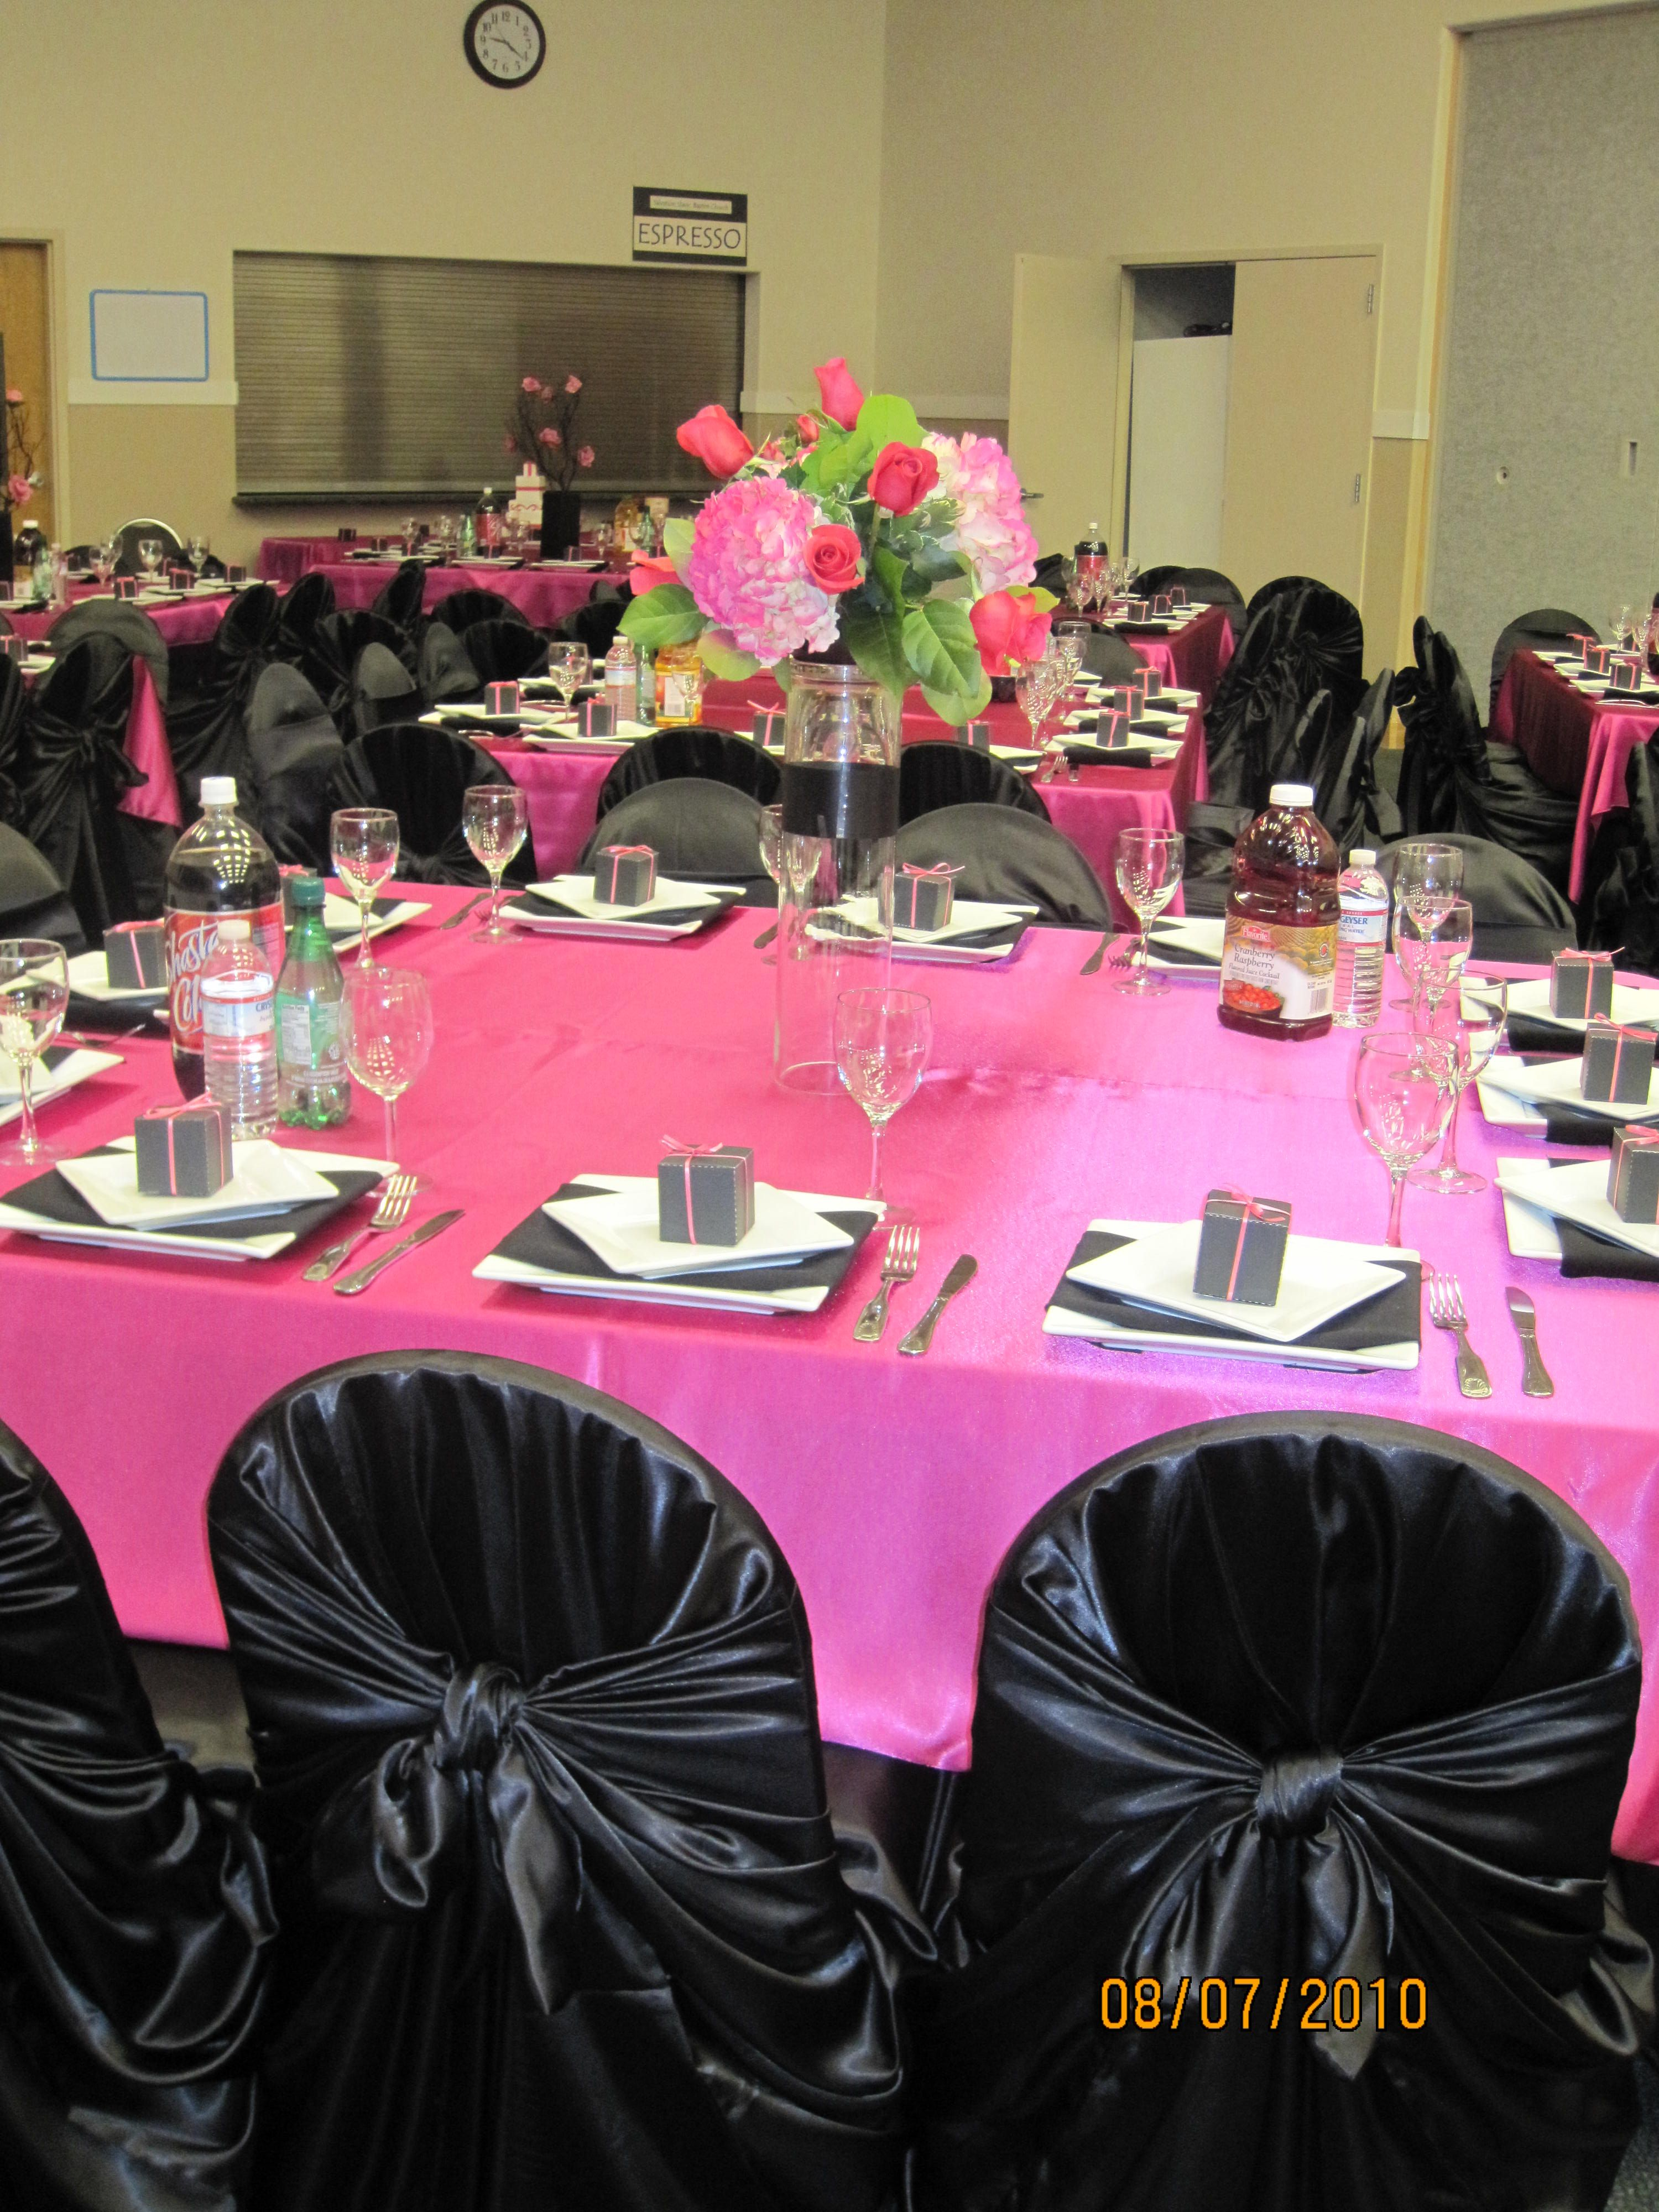 Chair Covers Pink How To Make Bean Bag Cover Black W Fusia Table Cloths Wedding Decorations